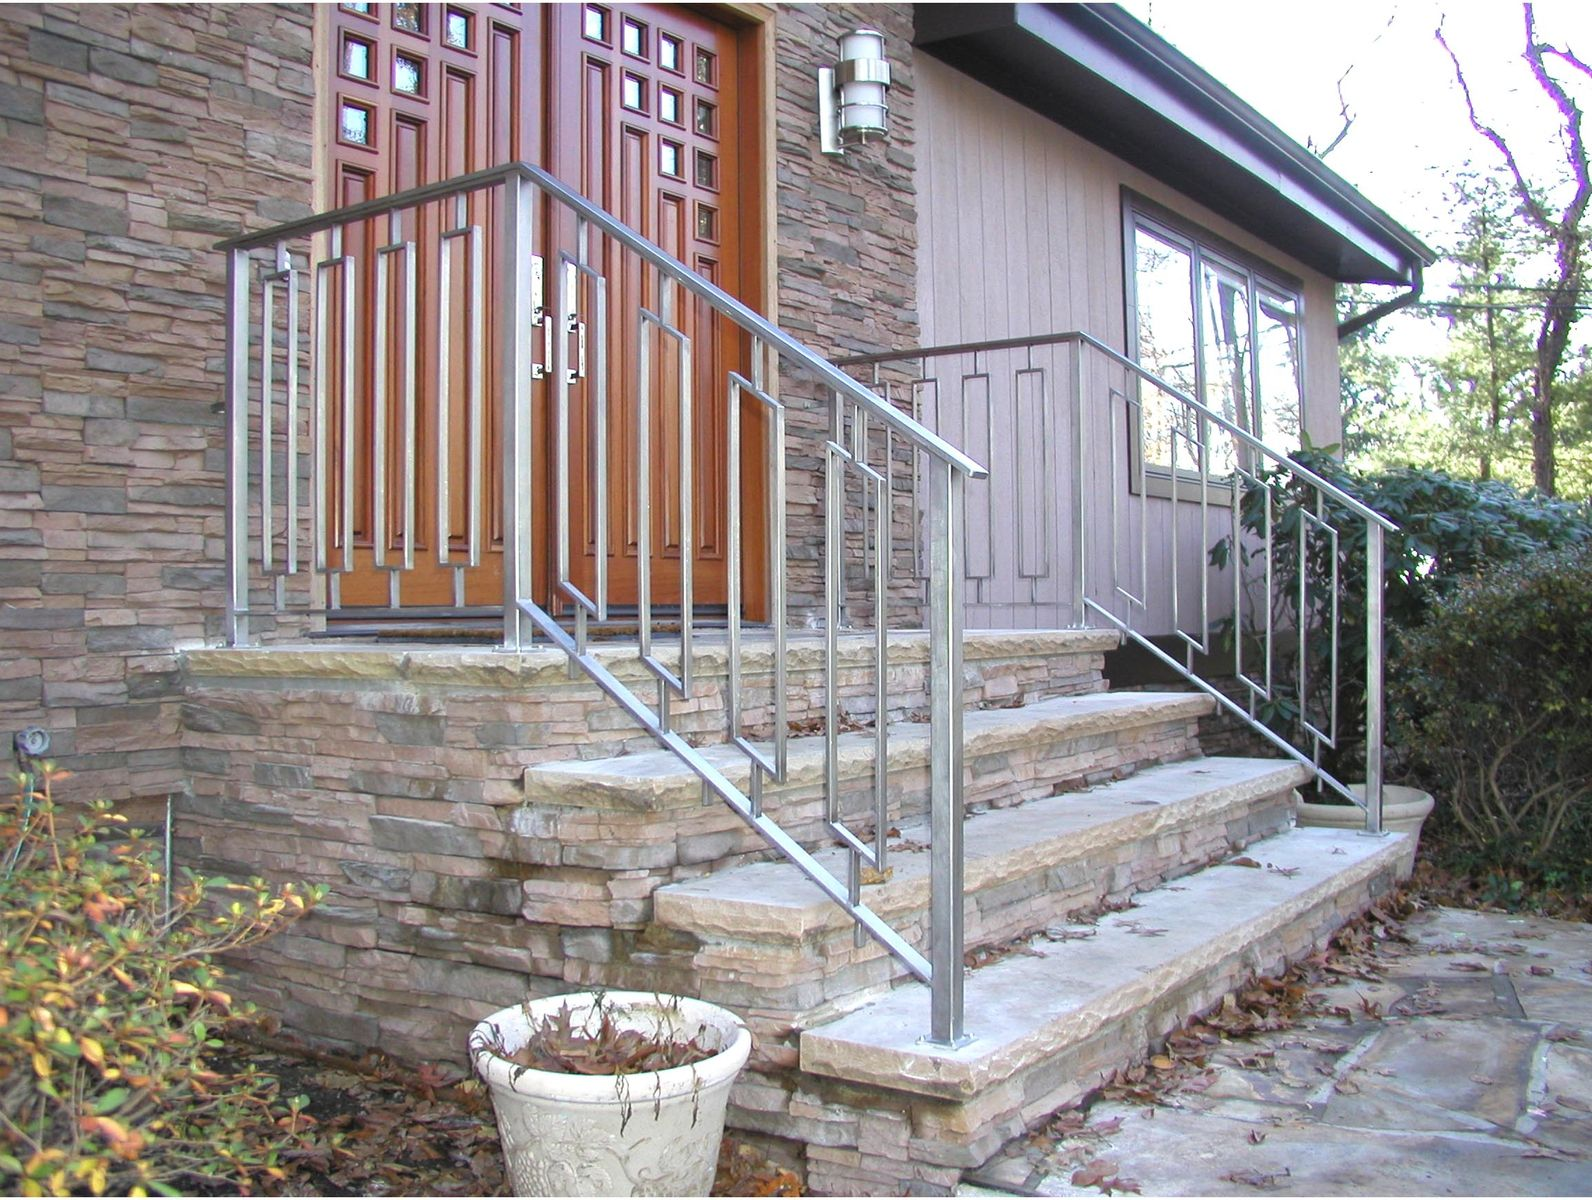 Best Custom Made Greenan Exterior Entry Railing For The Home 400 x 300